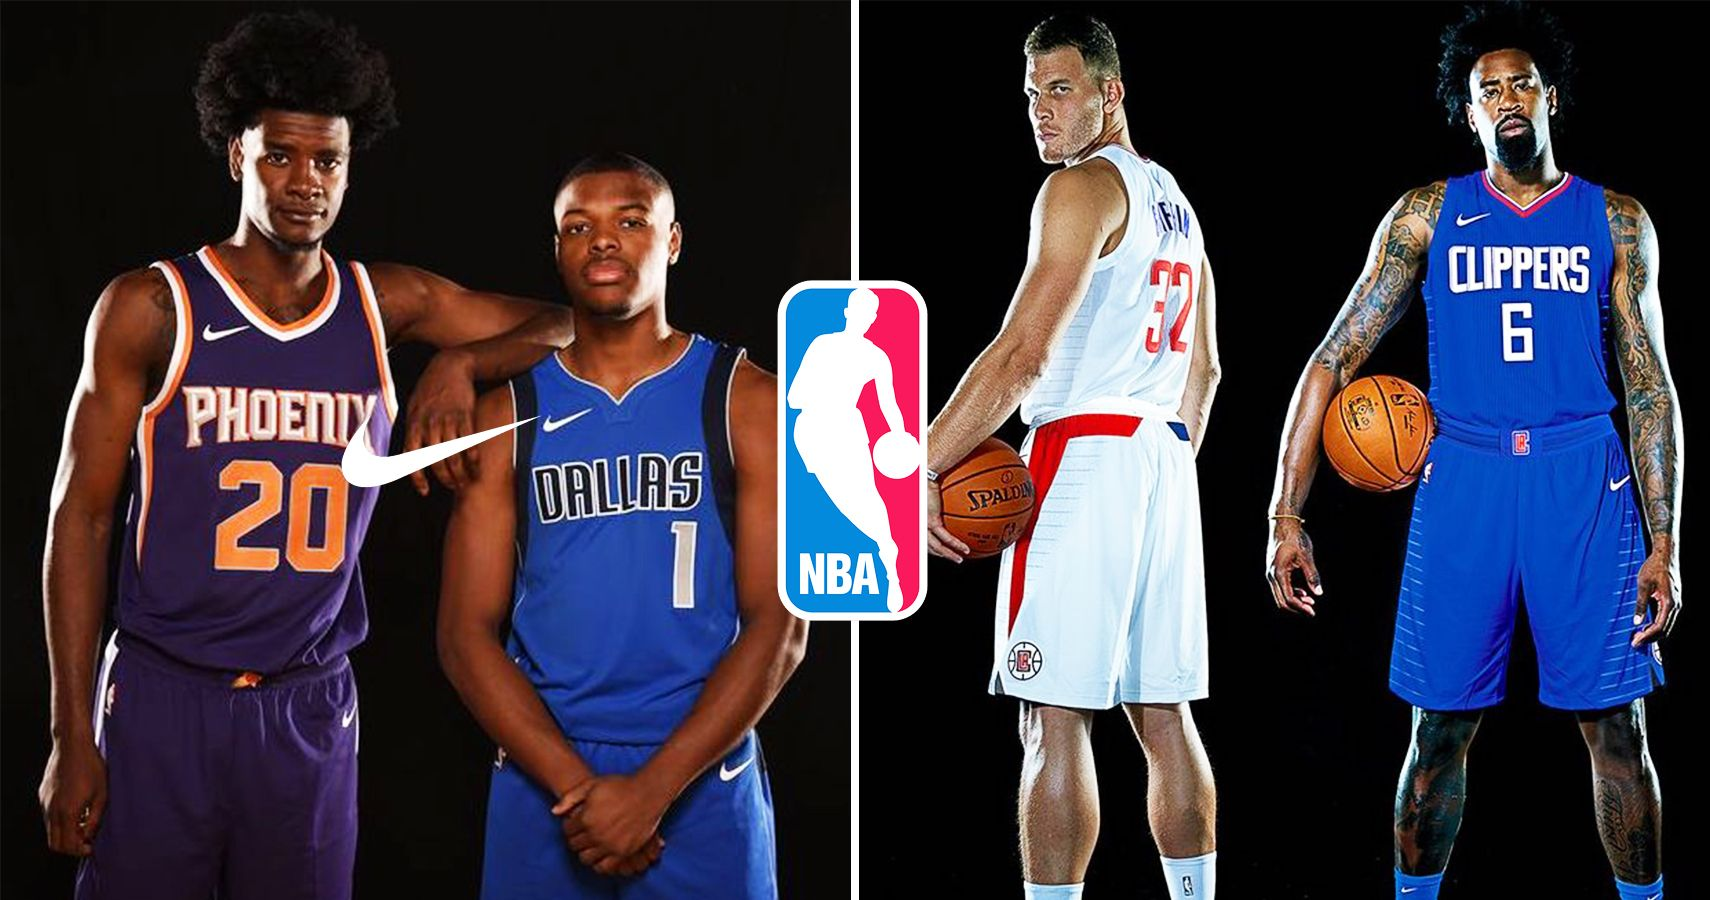 cc0e8025be1 New NBA Nike Jerseys That Look Better And That Look Worse